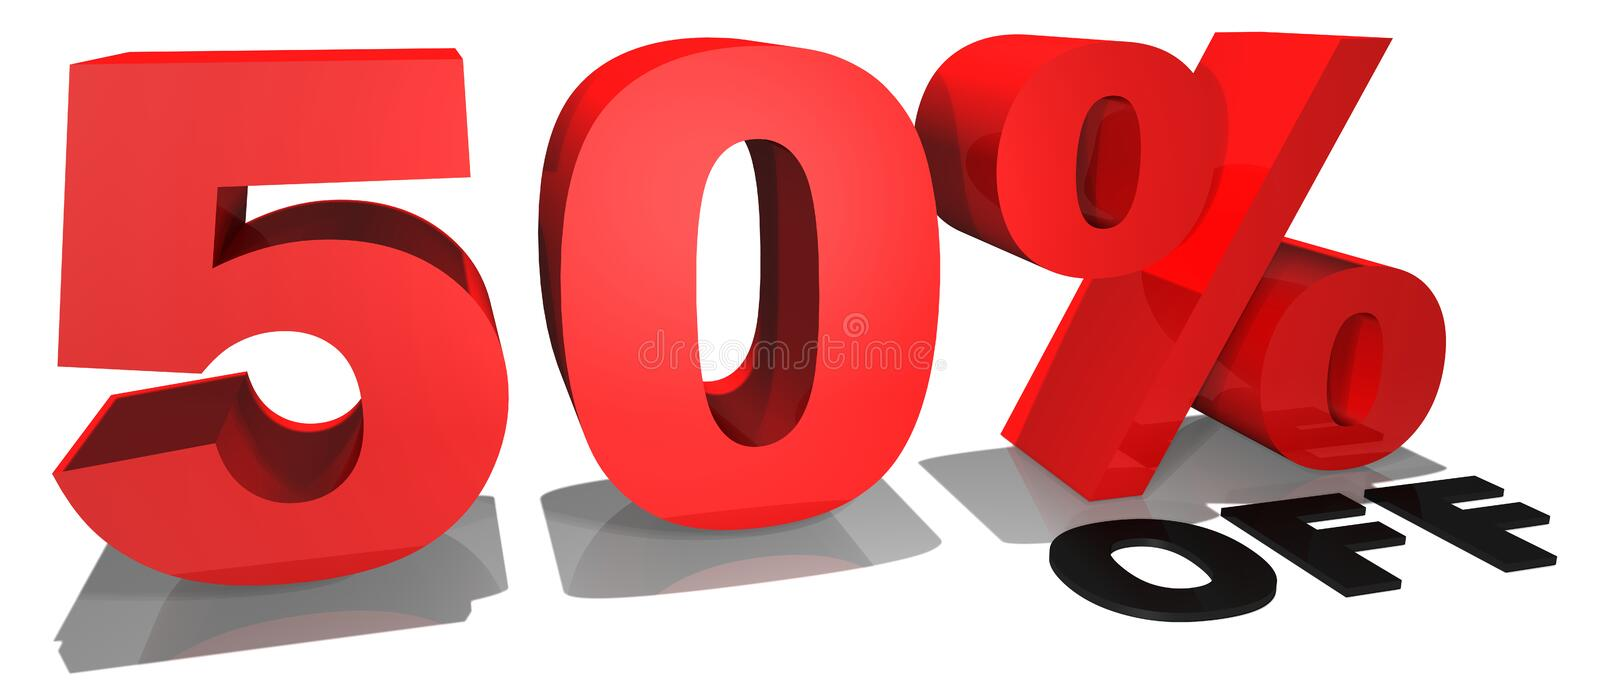 Sale promotion text 50% off stock illustration